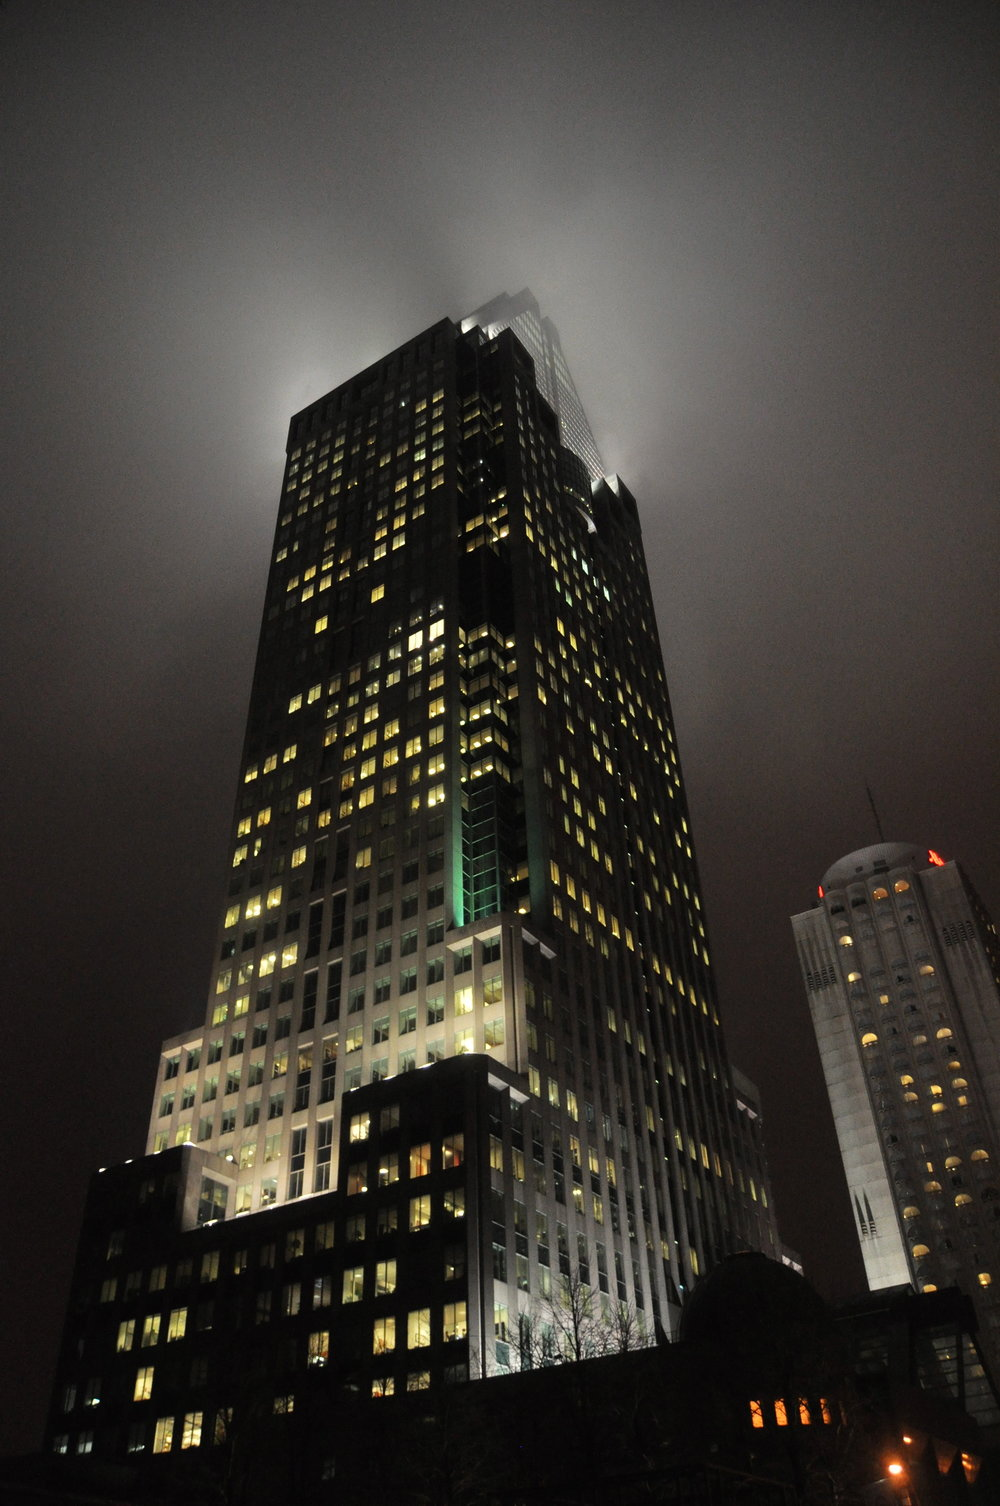 Backlit Night Tower.jpg